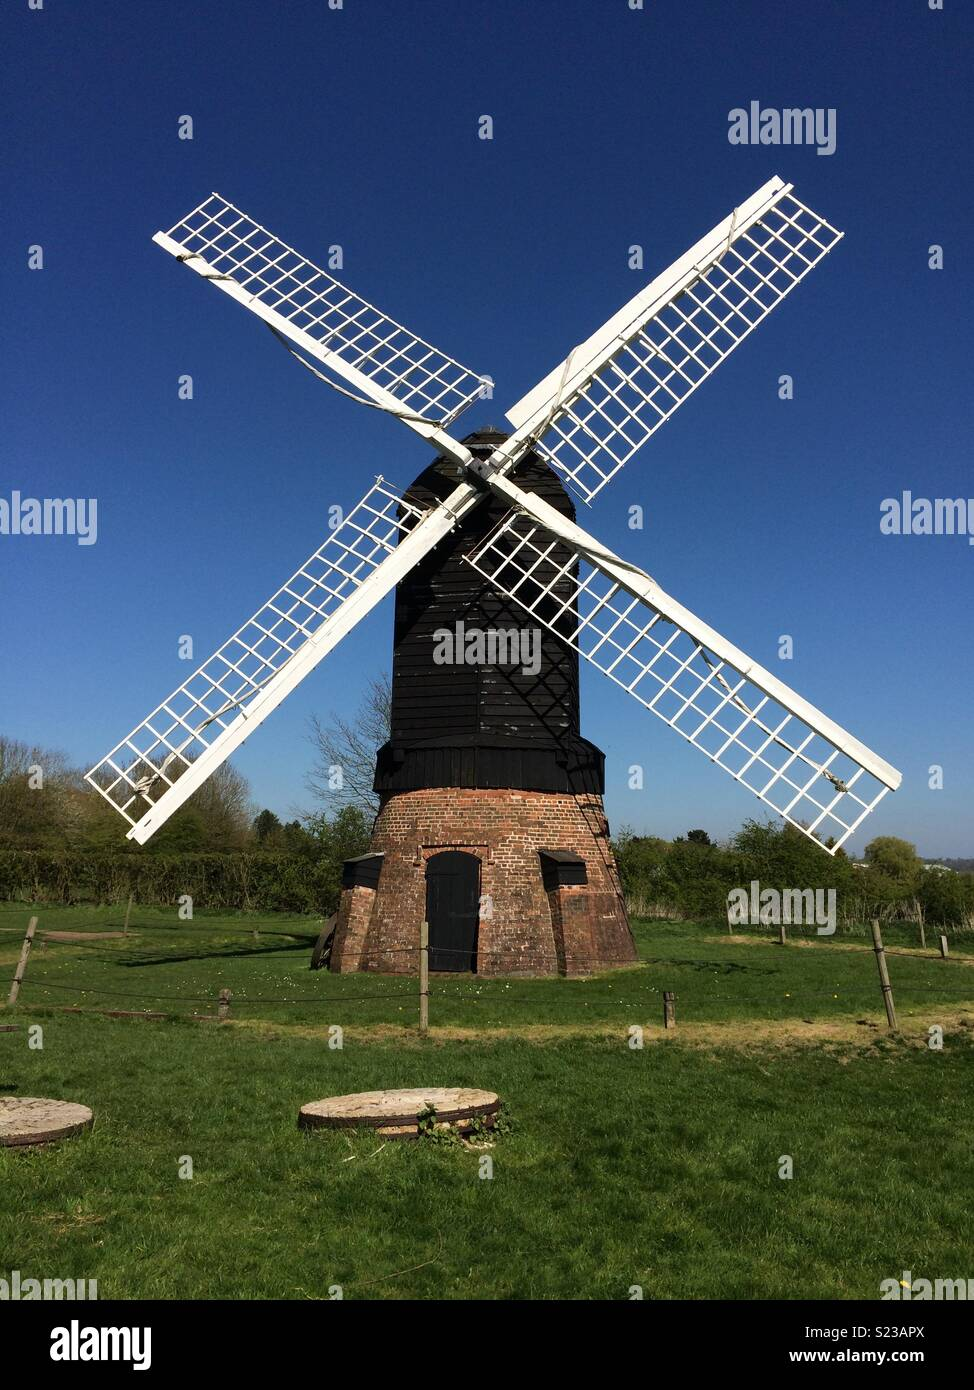 Windmill at Avoncroft Museum - Stock Image